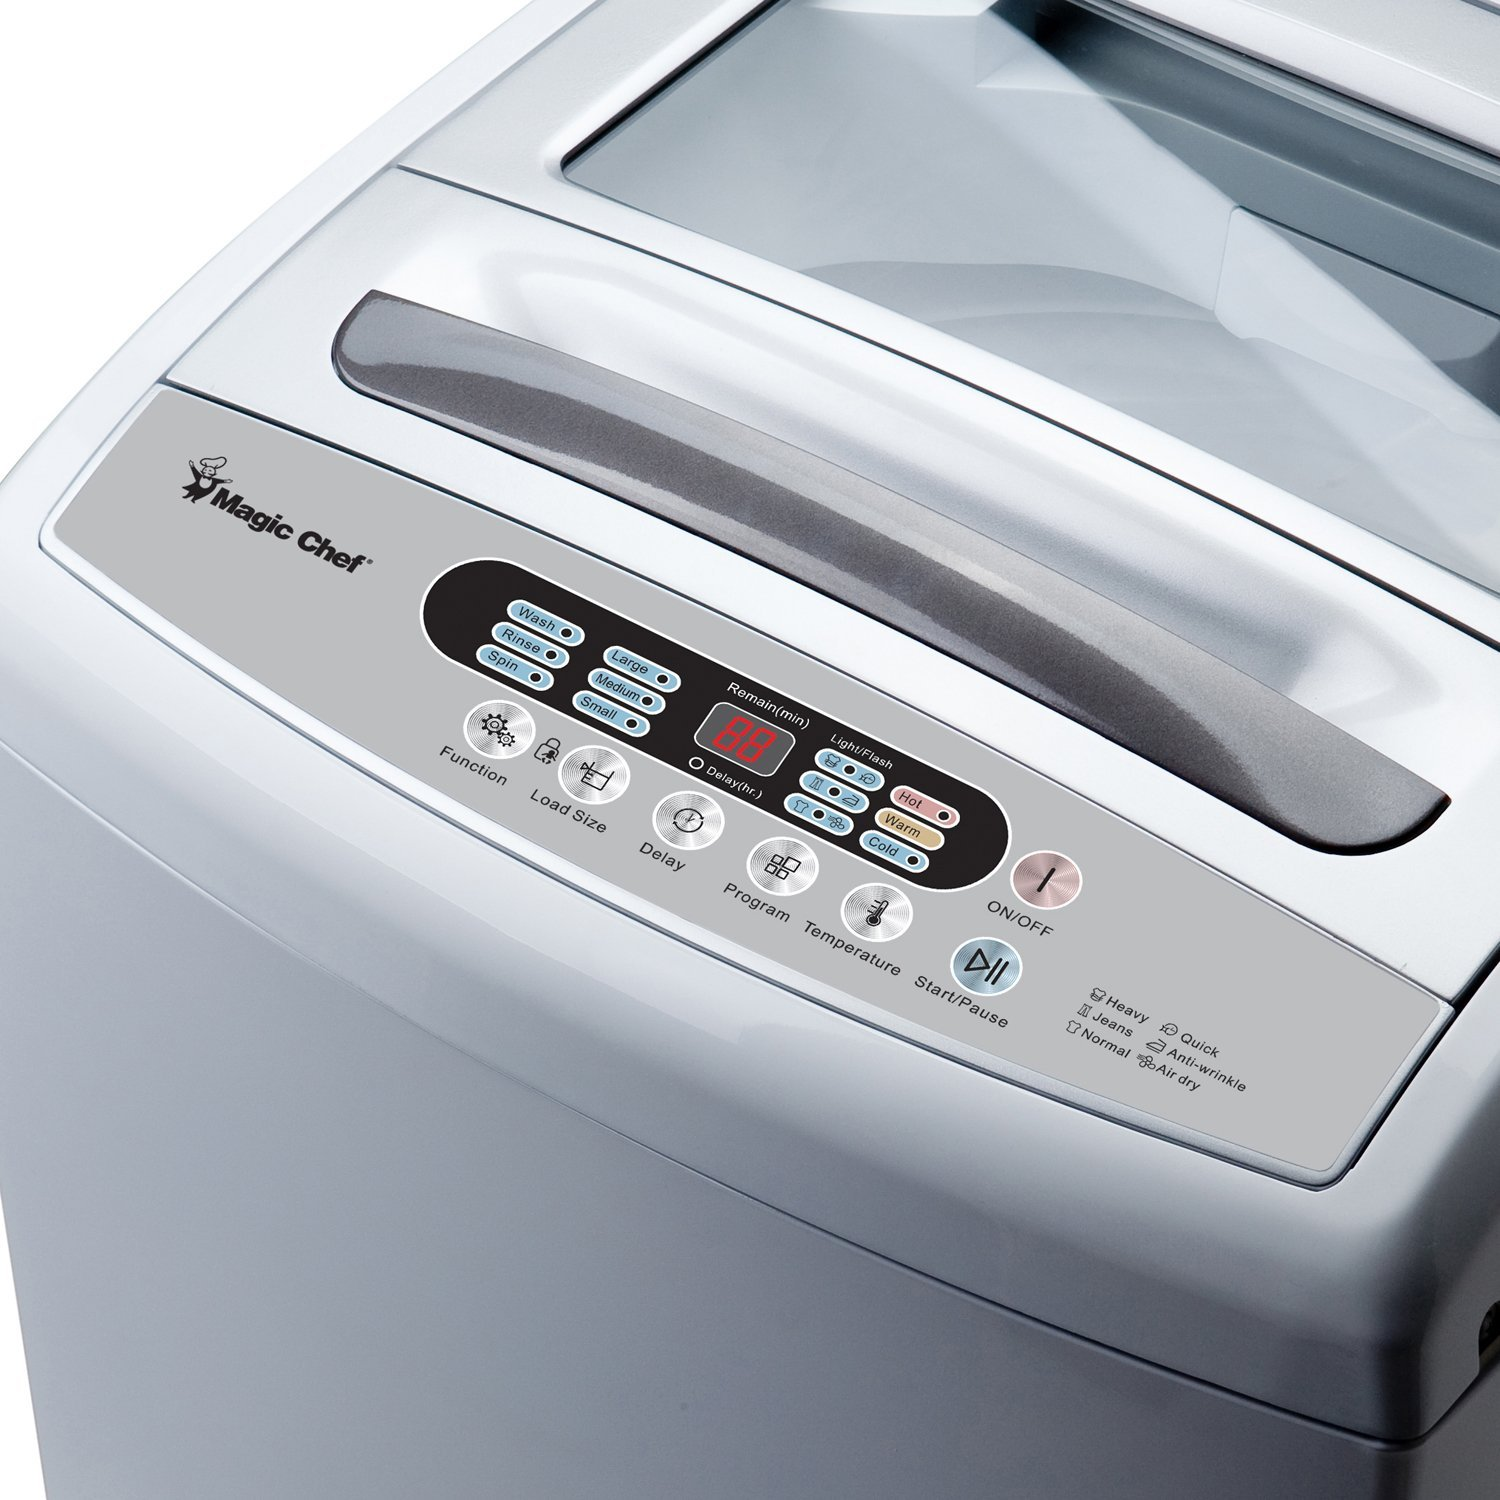 Amazon.com: Magic Chef Mcstcw16W2 Topload Compact Washer: Kitchen U0026 Dining